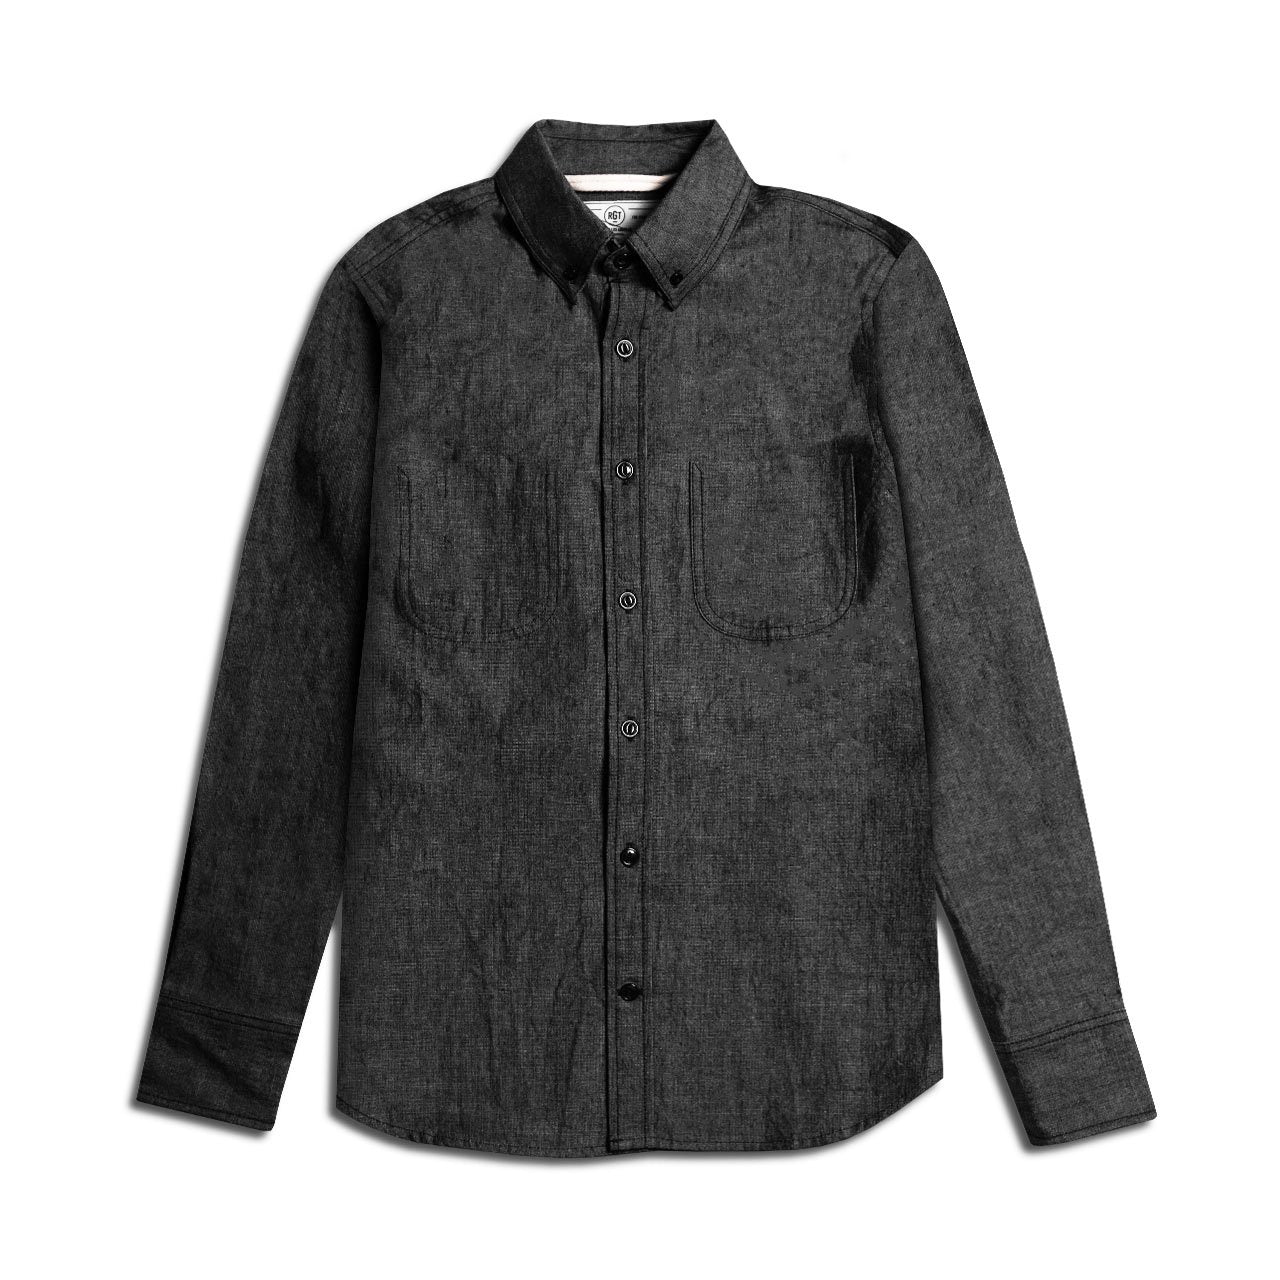 Rogue Territory x Uncrate Grayscale Jumper Shirt